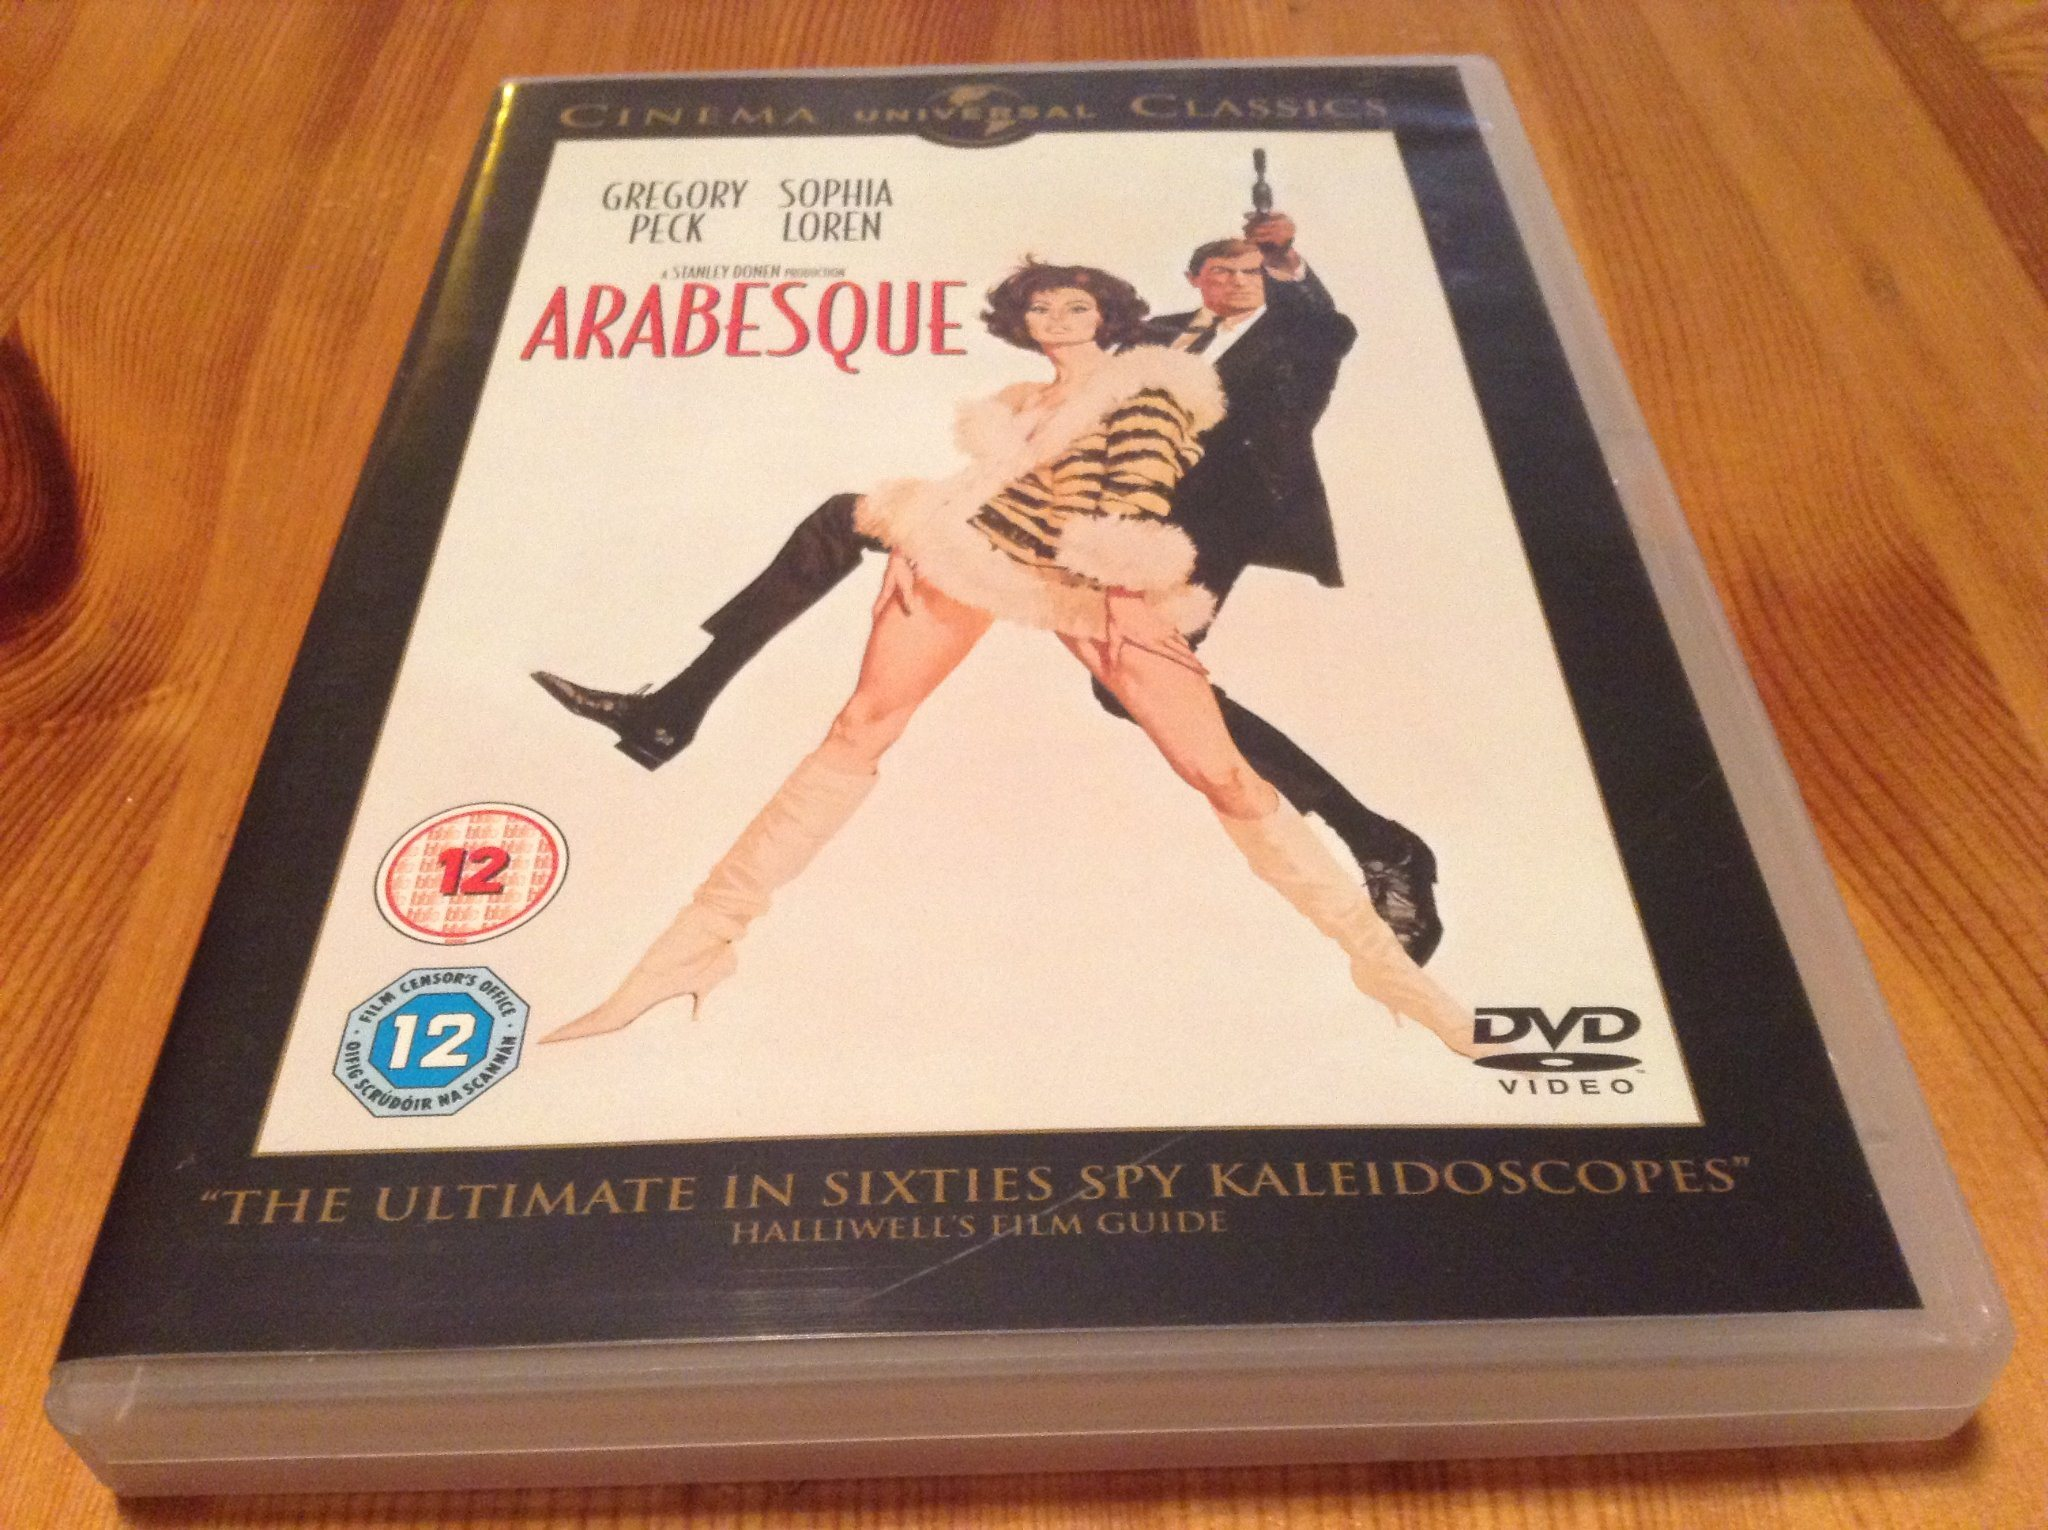 Arabesque - Gregory Peck, Sophia Loren - Repfri - Svensk text - DVD